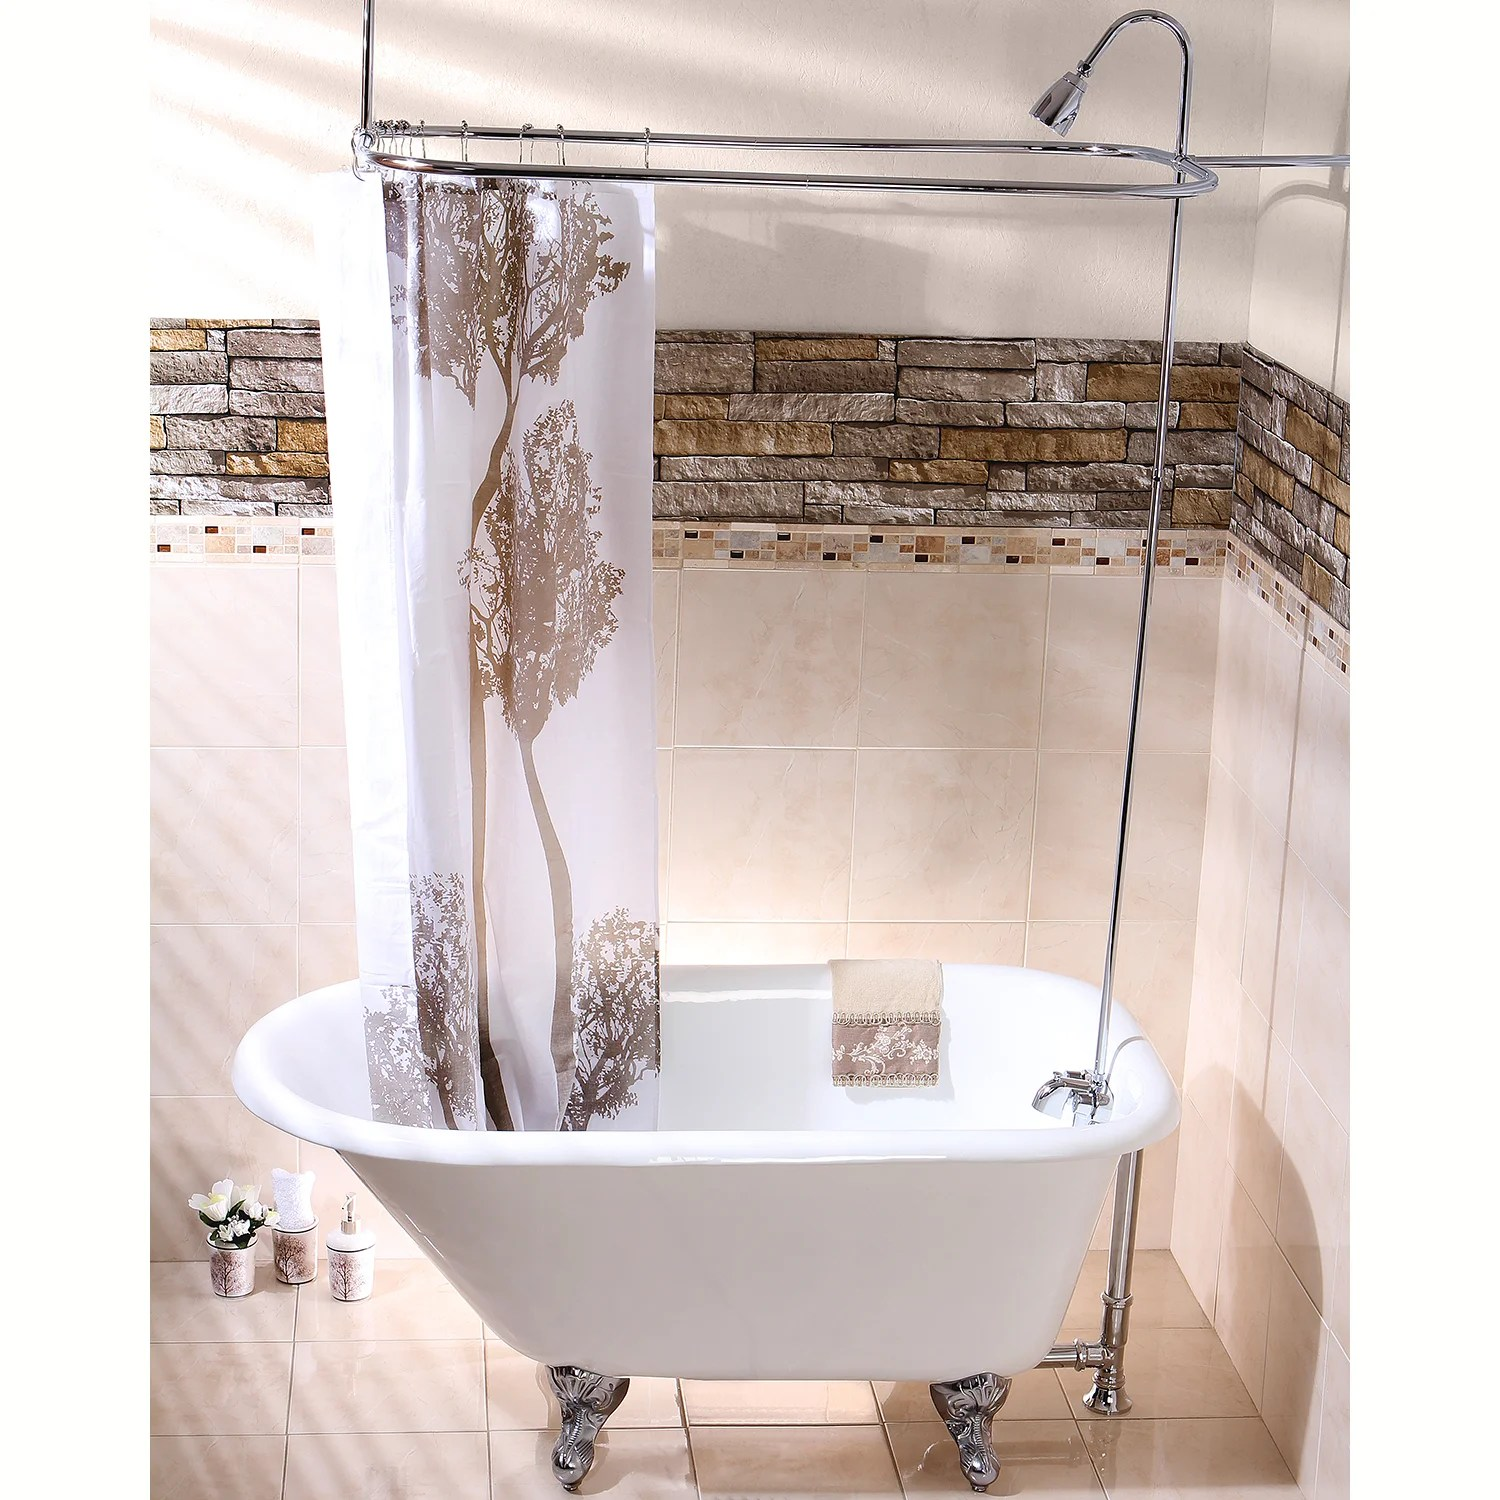 Aqua Eden Vct3d543019nt1 54 Inch Cast Iron Roll Top Clawfoot Tub With 3 3 8 Inch Wall Drillings White Polished Chrome